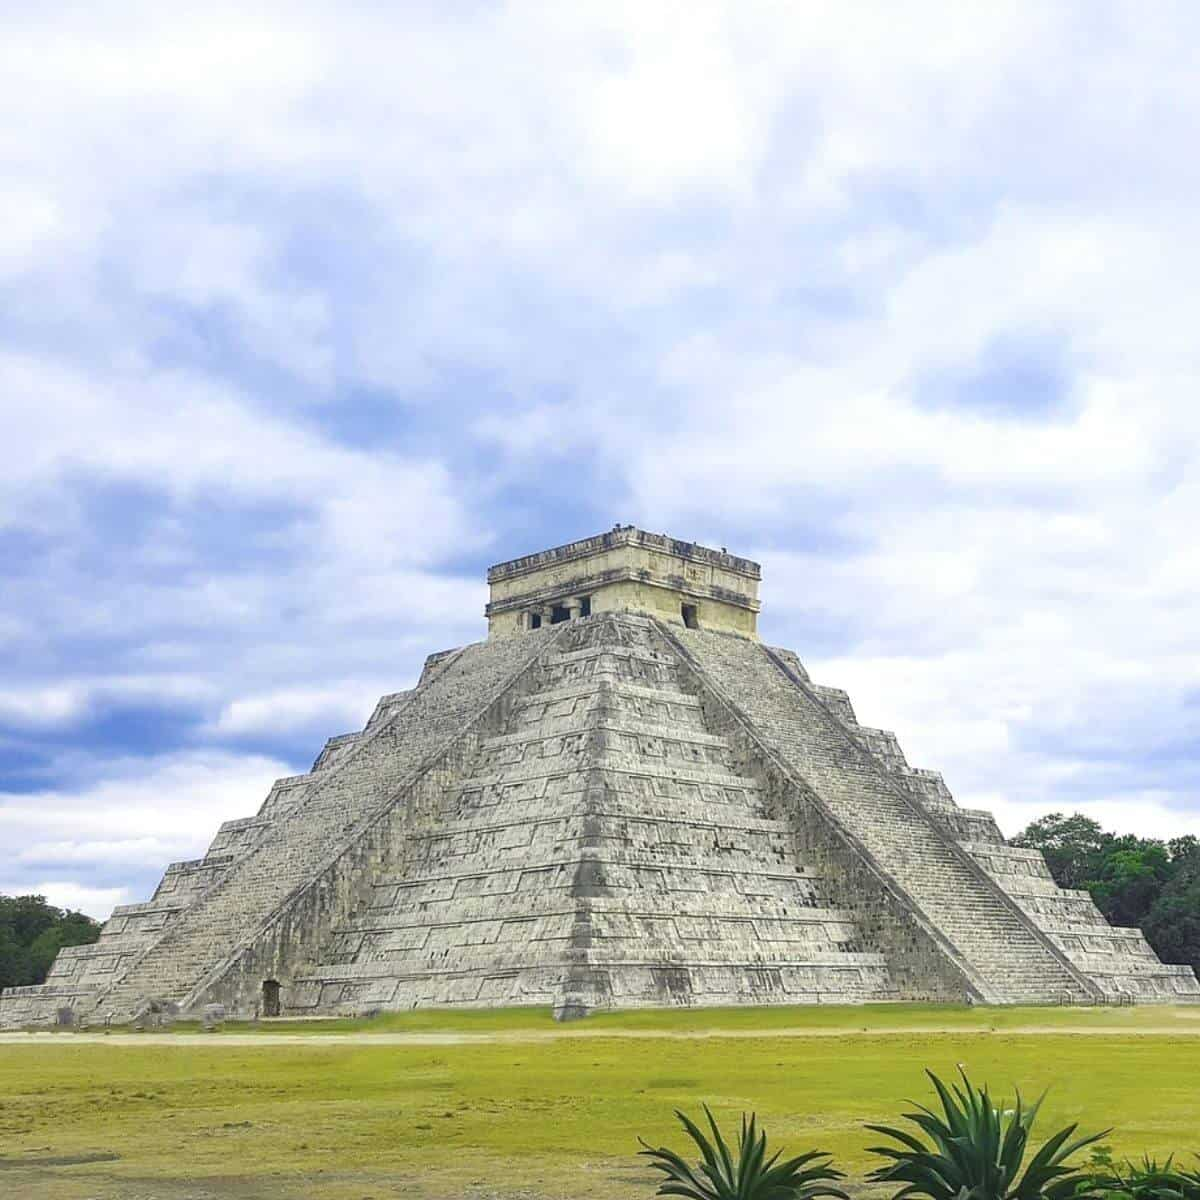 Chichen Itza on a partly cloudy day.